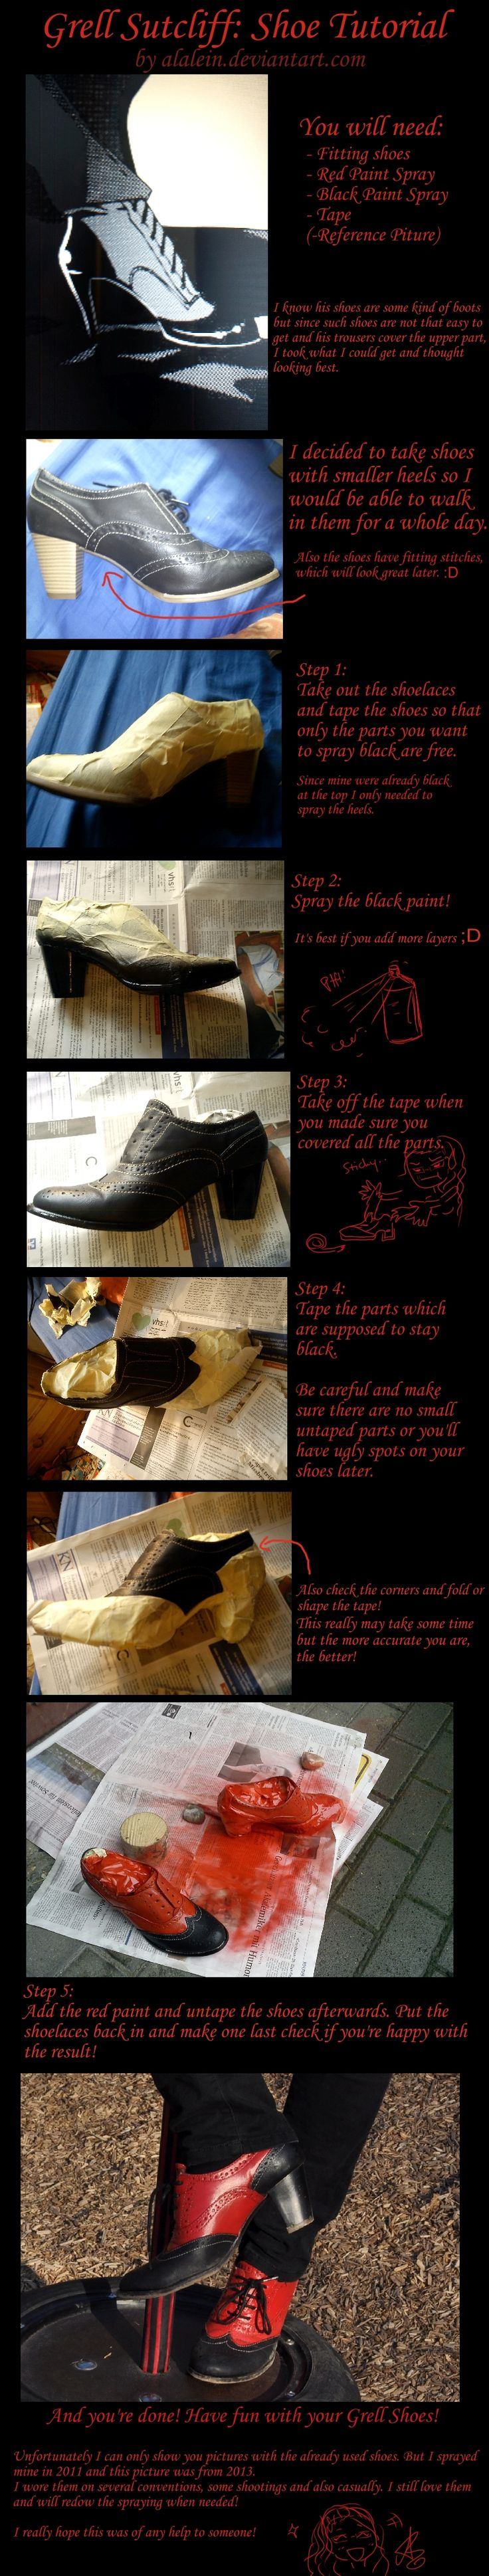 Grell Sutcliff Shoe Tutorial by Alalein.deviantart.com on @deviantART